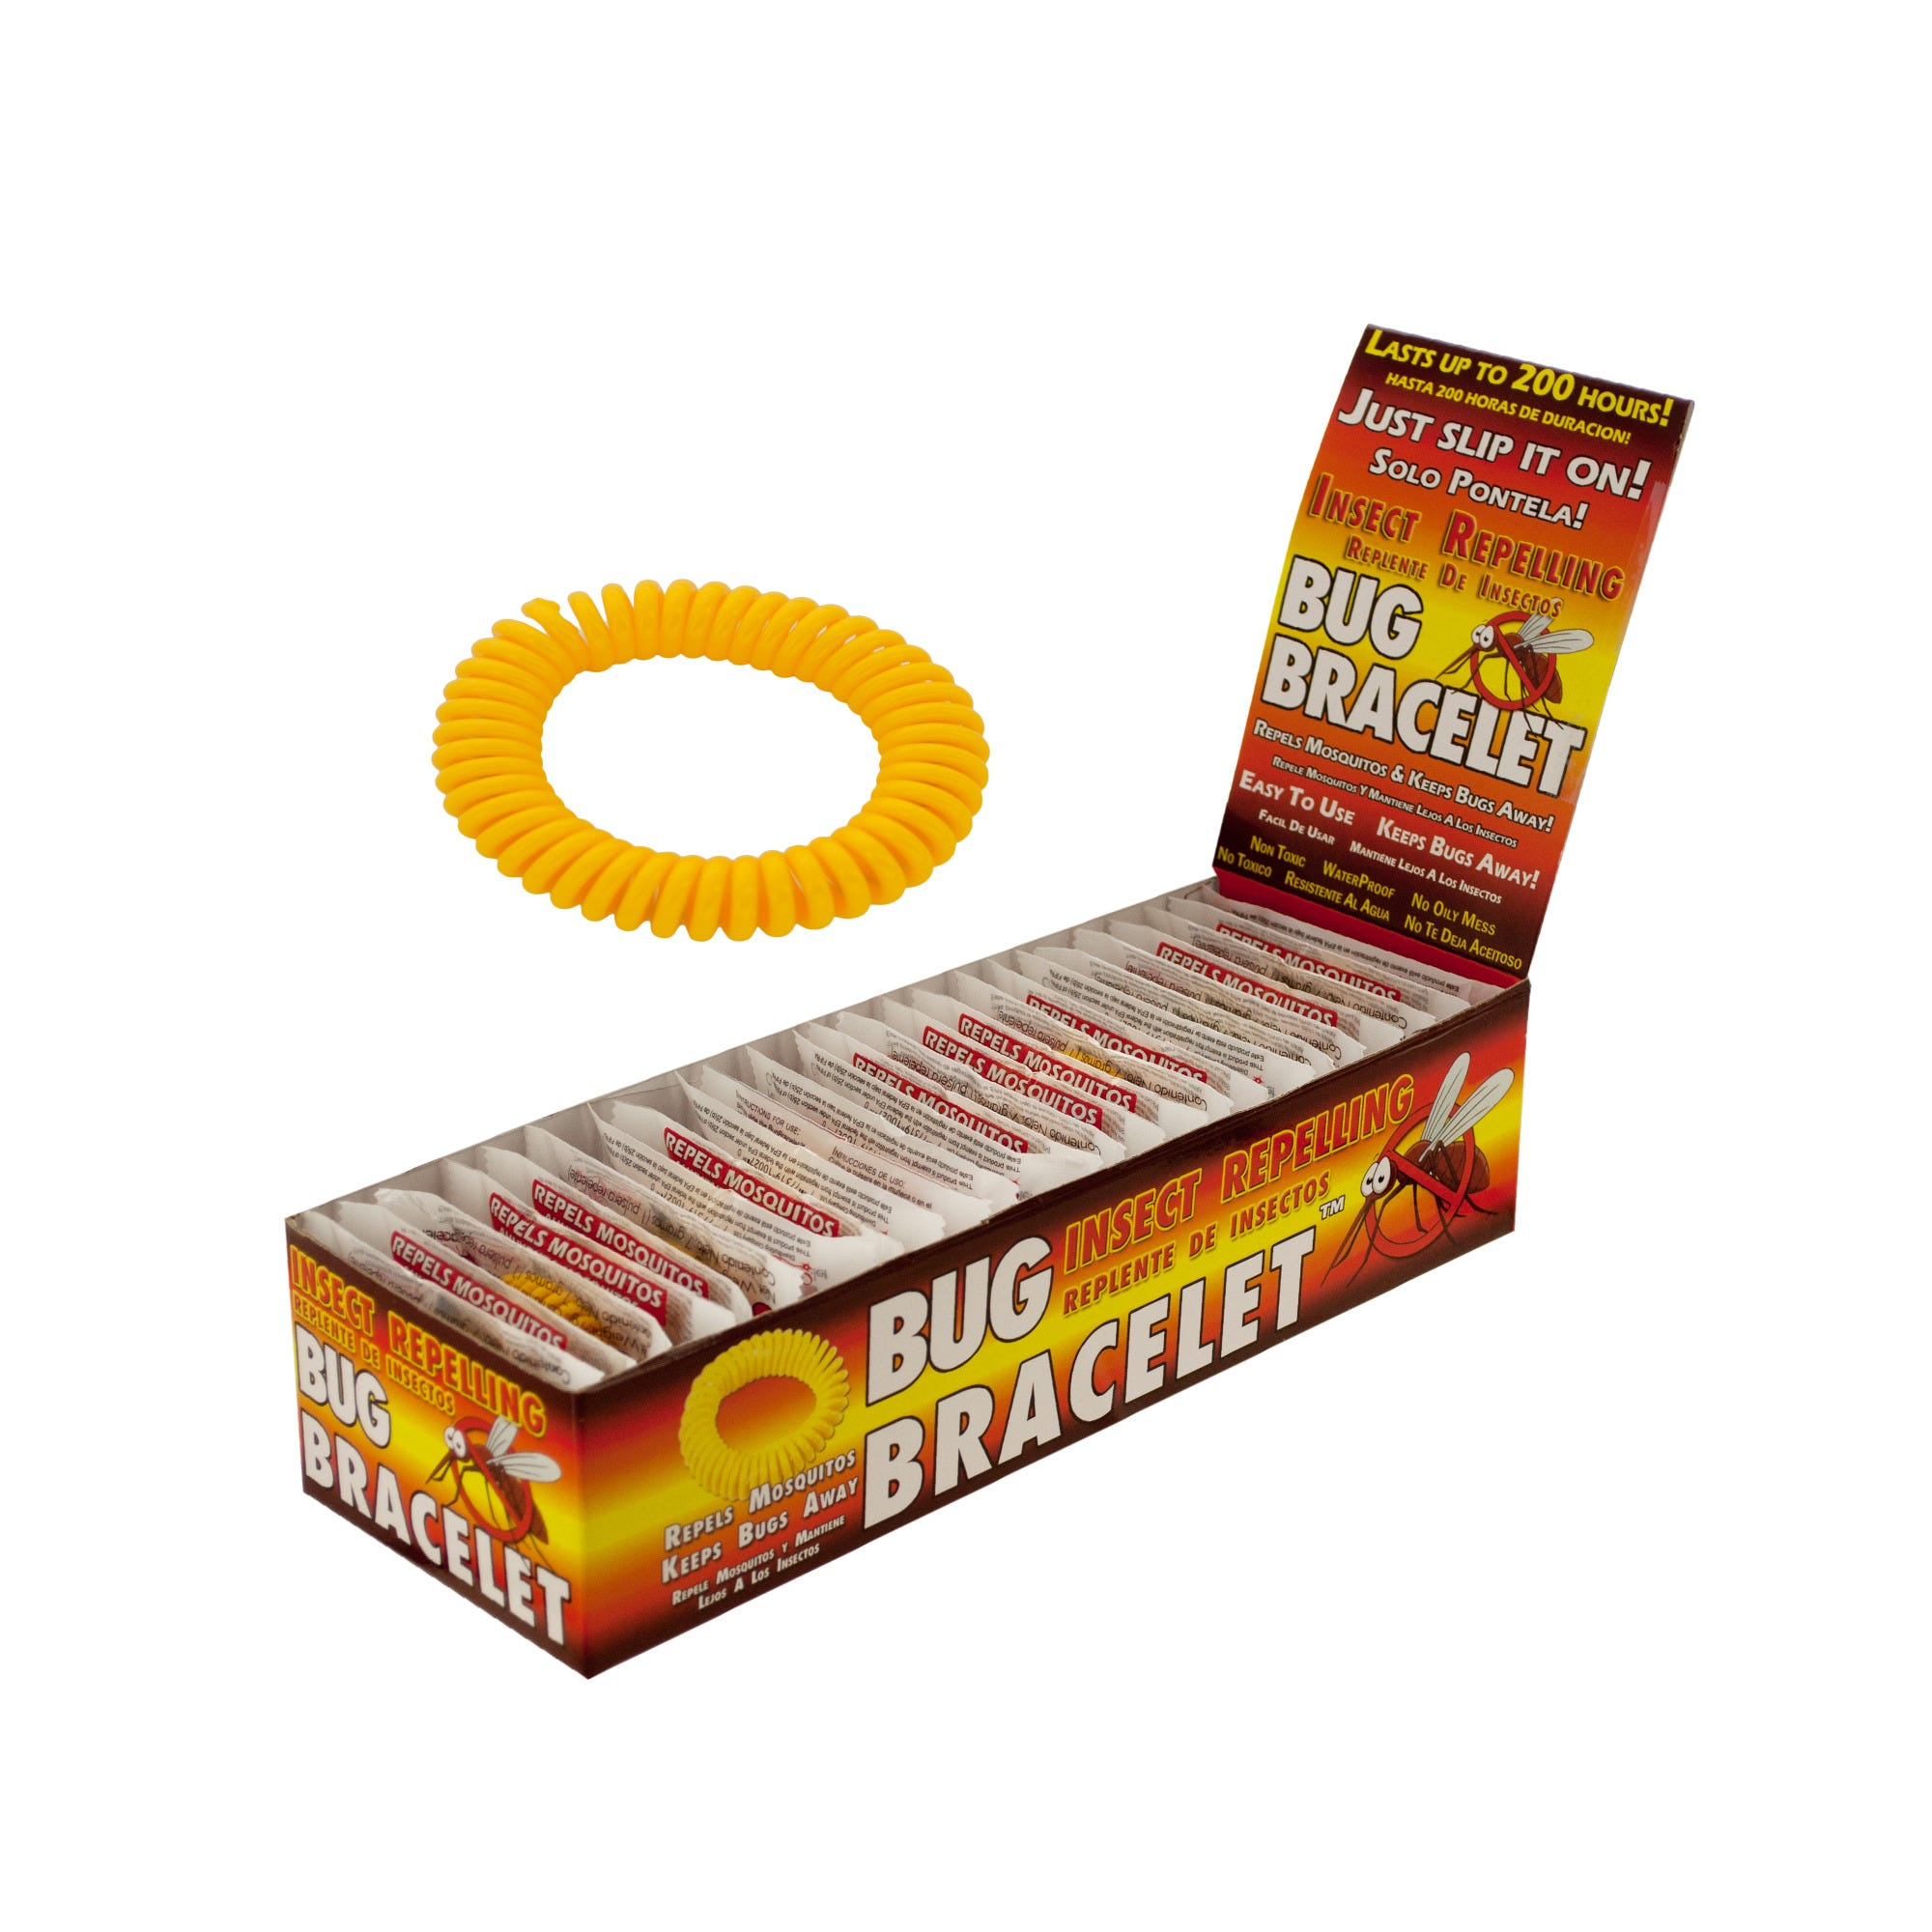 insect-repelling-bug-bracelet-countertop-display